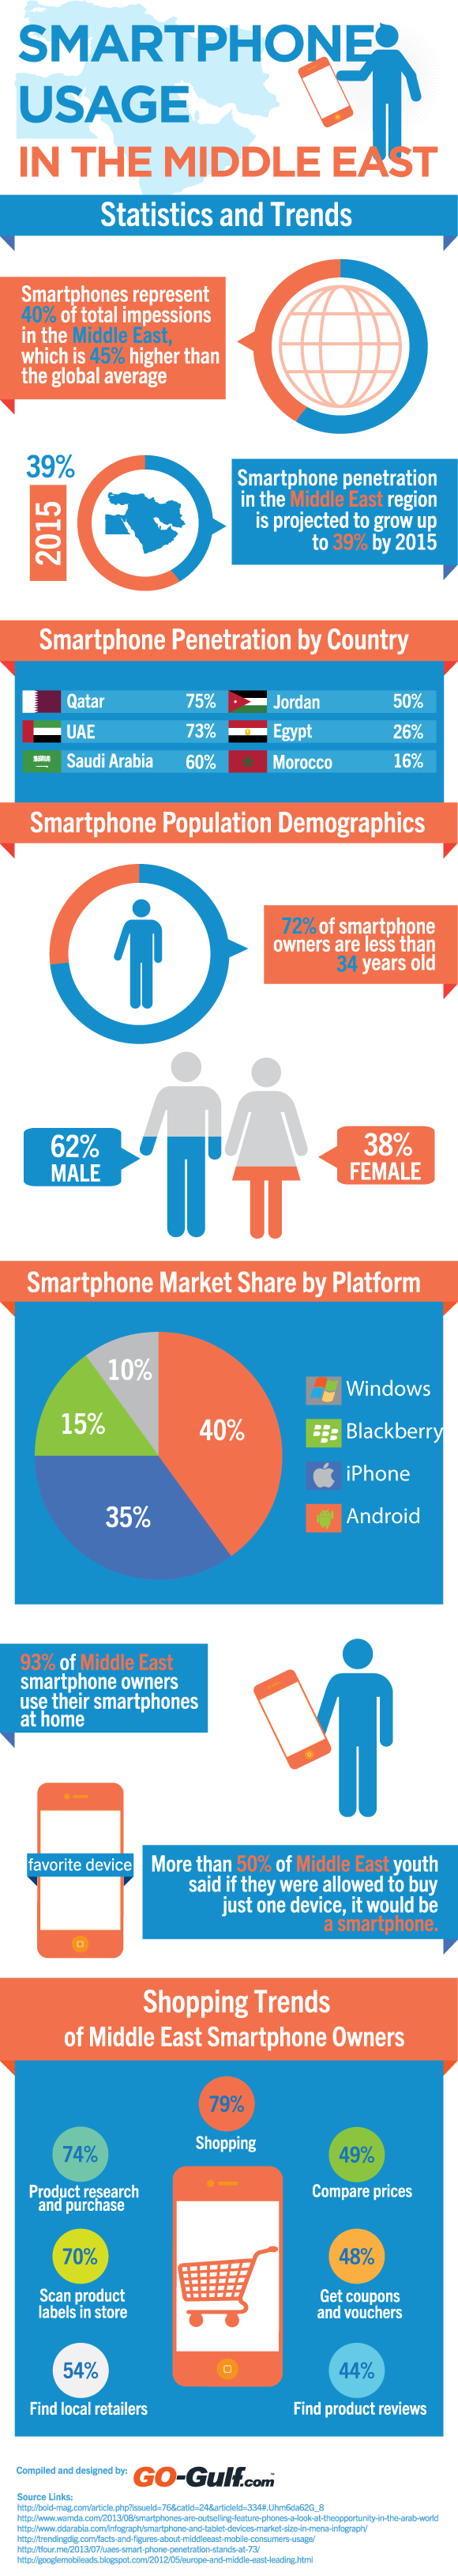 Smartphone Usage Middle East– Statistics And Trends